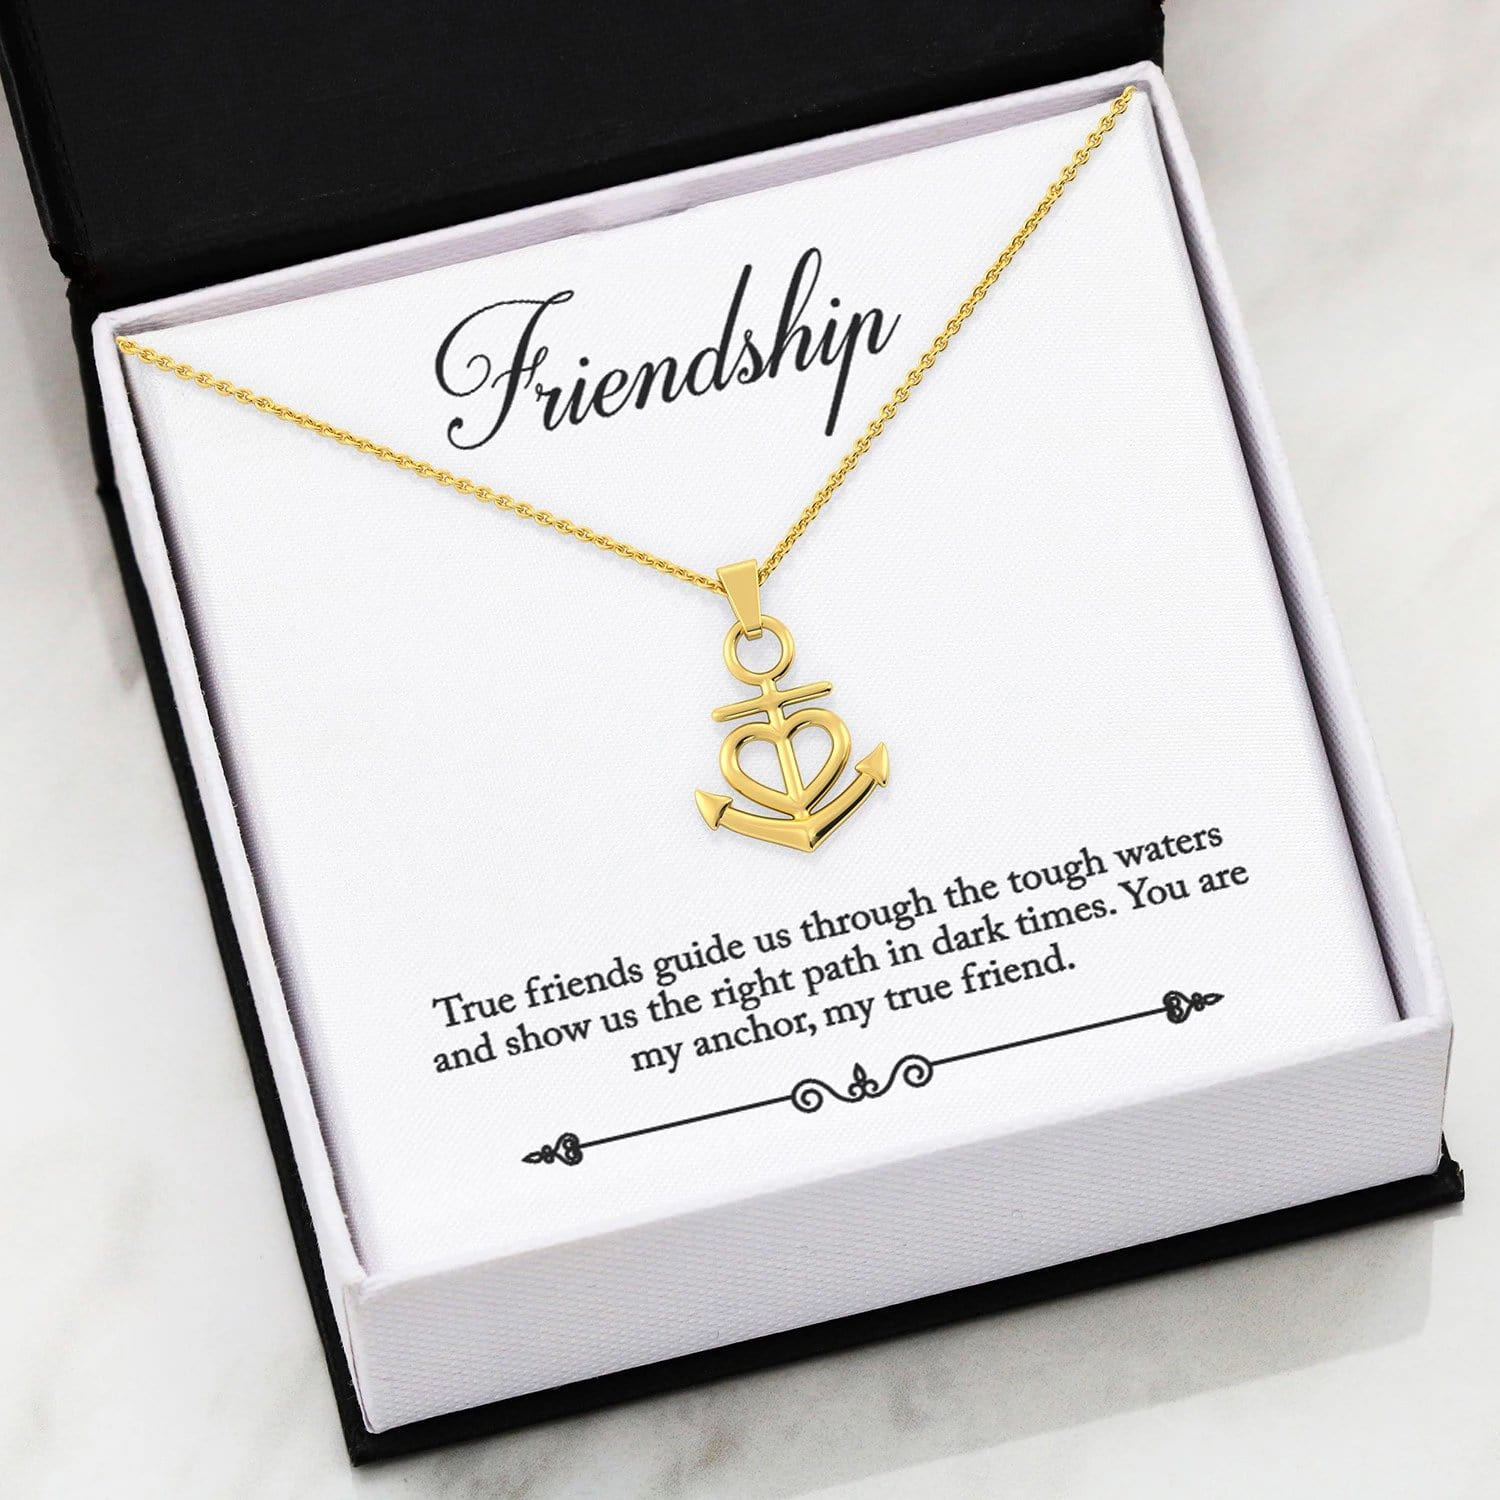 Luxury Friendship Anchor Necklace - Jennifer Stone Co.